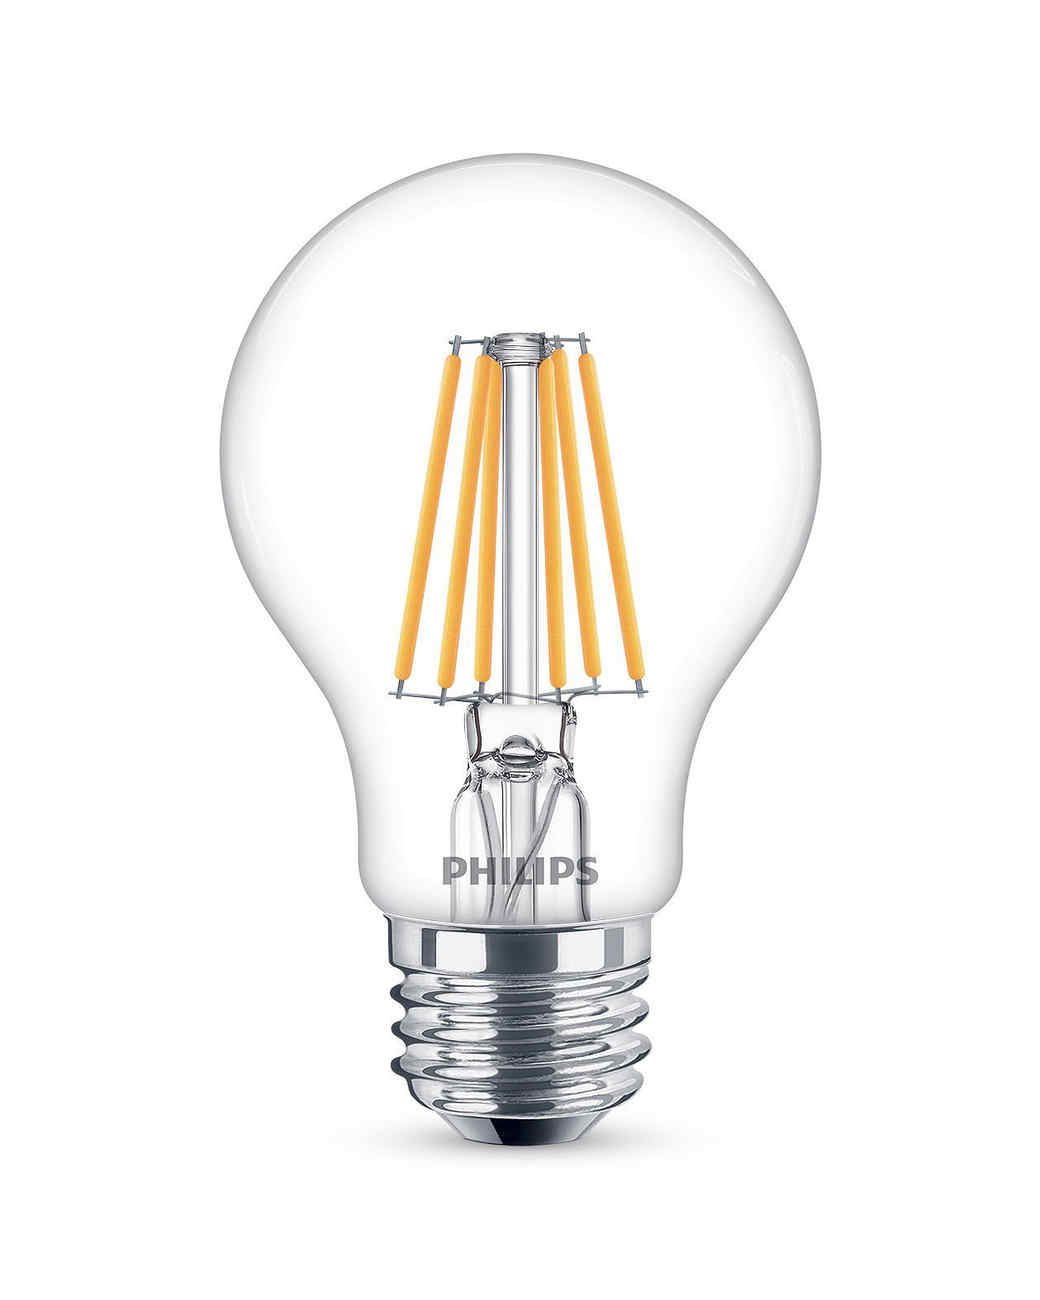 Philips Dimmable 60-Watt LED Light Bulb